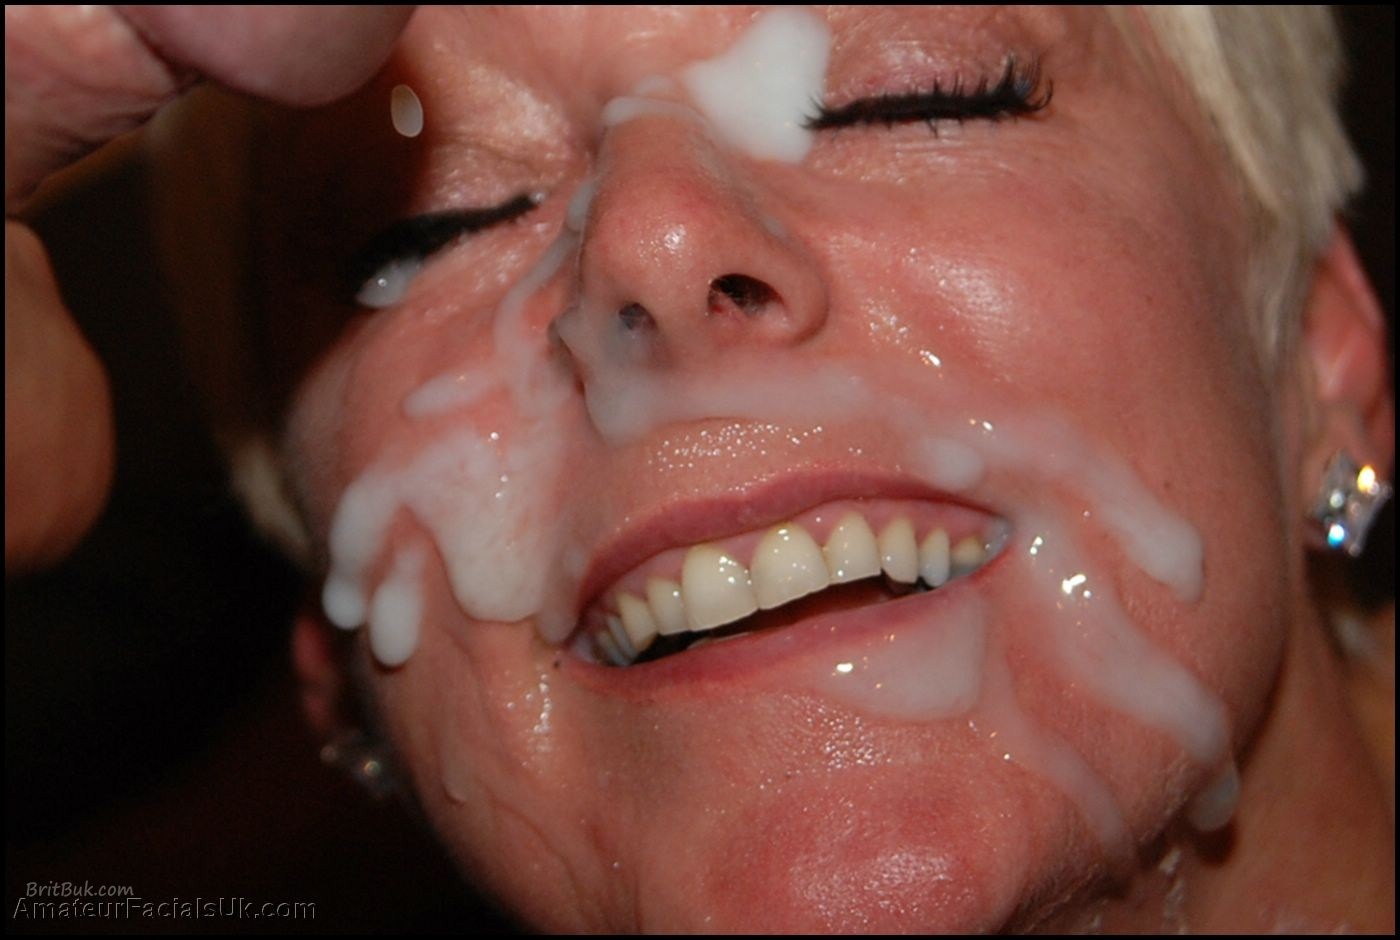 SemenFacialsandSmiles UKBukkakeQueen012 Painting Her Face with Cum. A Bukkake Work of Art.